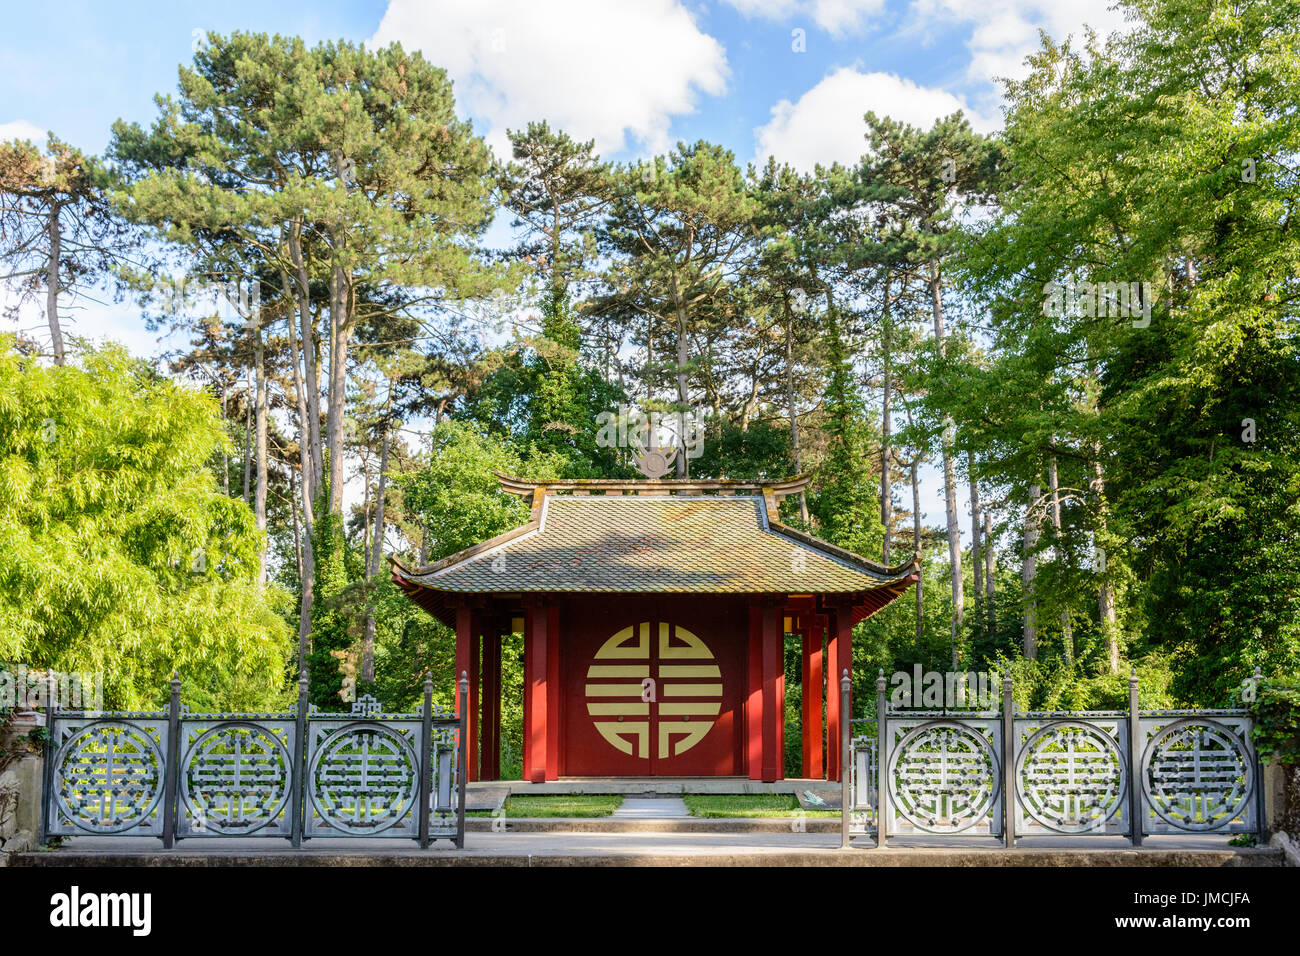 Front view of the Indochinese Memorial Temple in the Garden of Tropical Agronomy in Paris, dedicated to the Vietnamese soldiers who died for France. - Stock Image